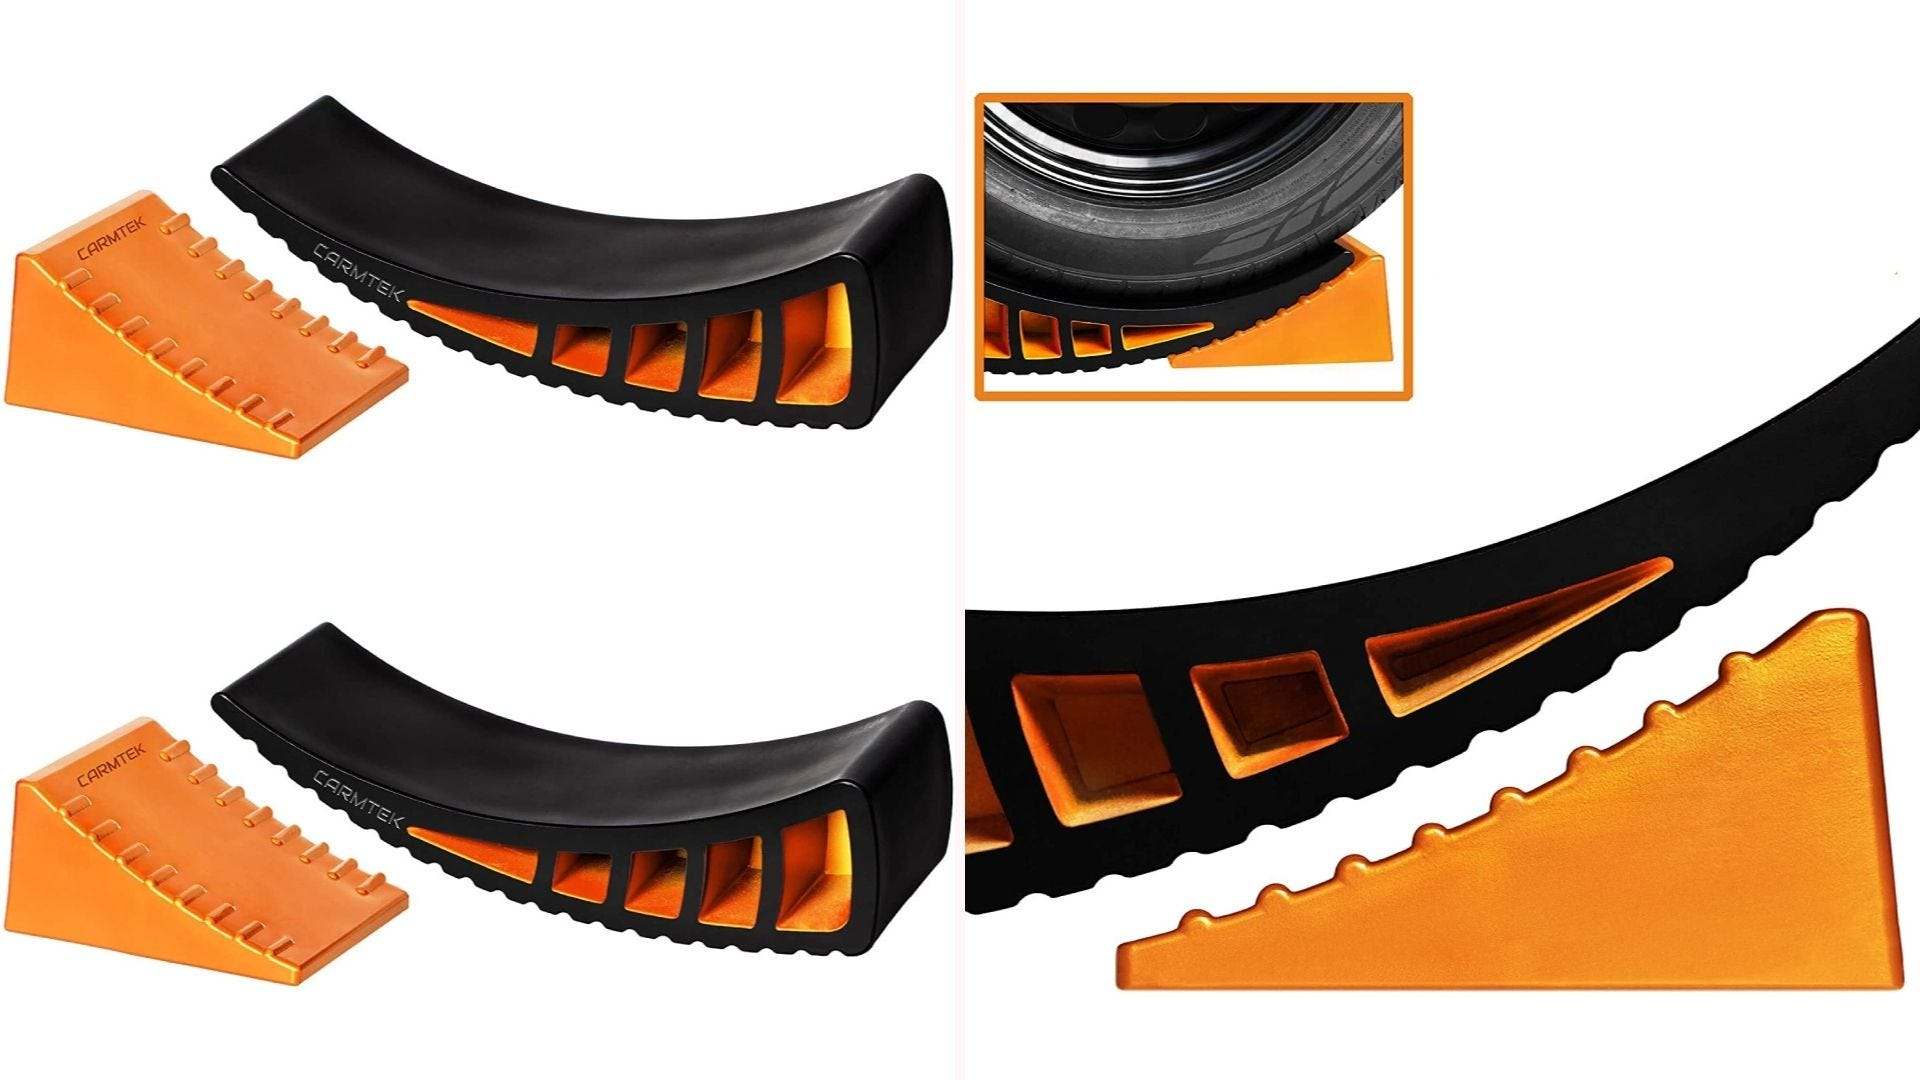 On the left, two orange wheel chocks sit next to two black levelers. On the right, a close-up view of the grooves on the wheel chock sliding into the groove channels on the leveler.